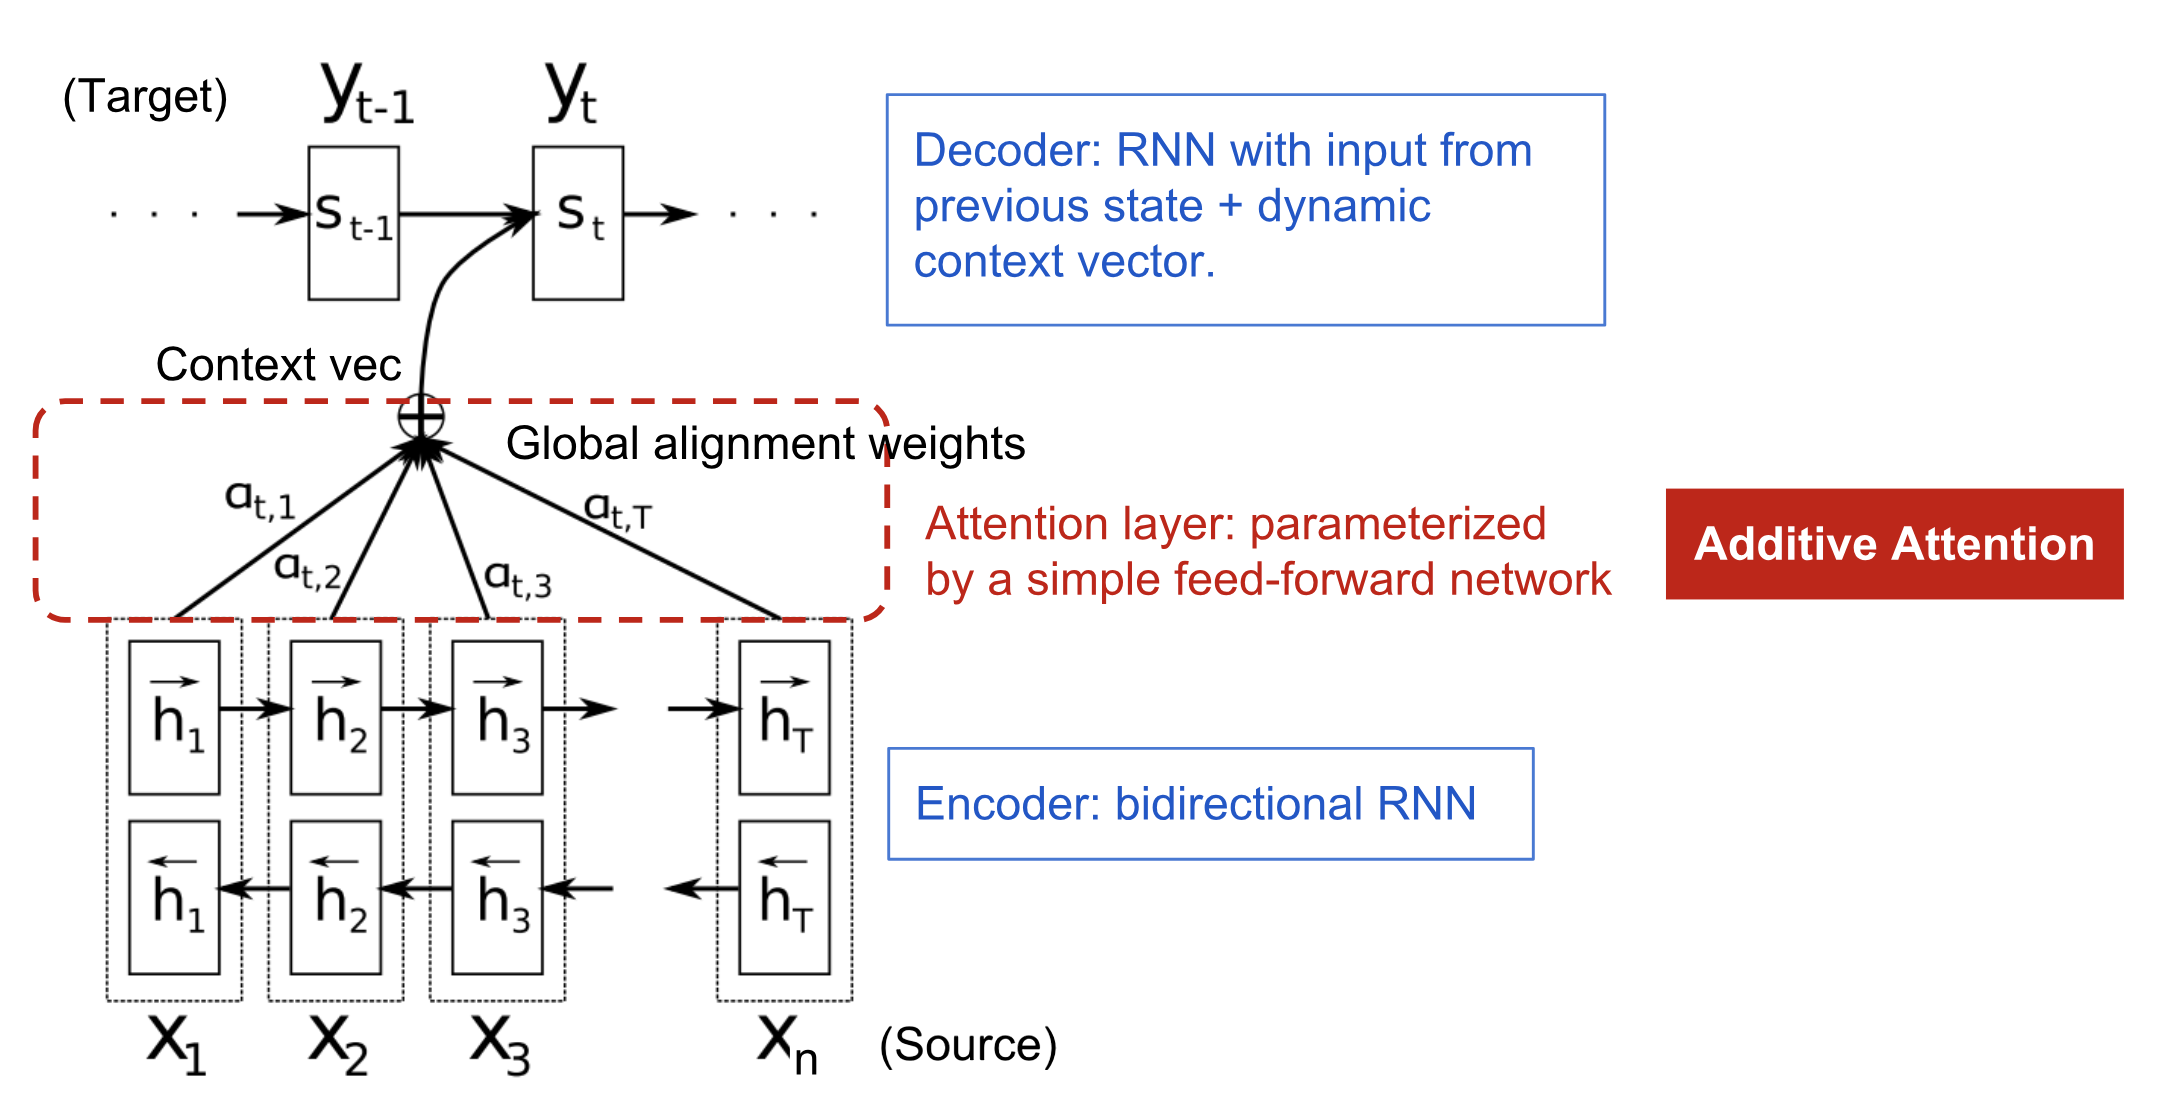 The encoder-decoder model with additive attention (see [Bahdanau et al. (2015)](https://arxiv.org/abs/1409.0473))